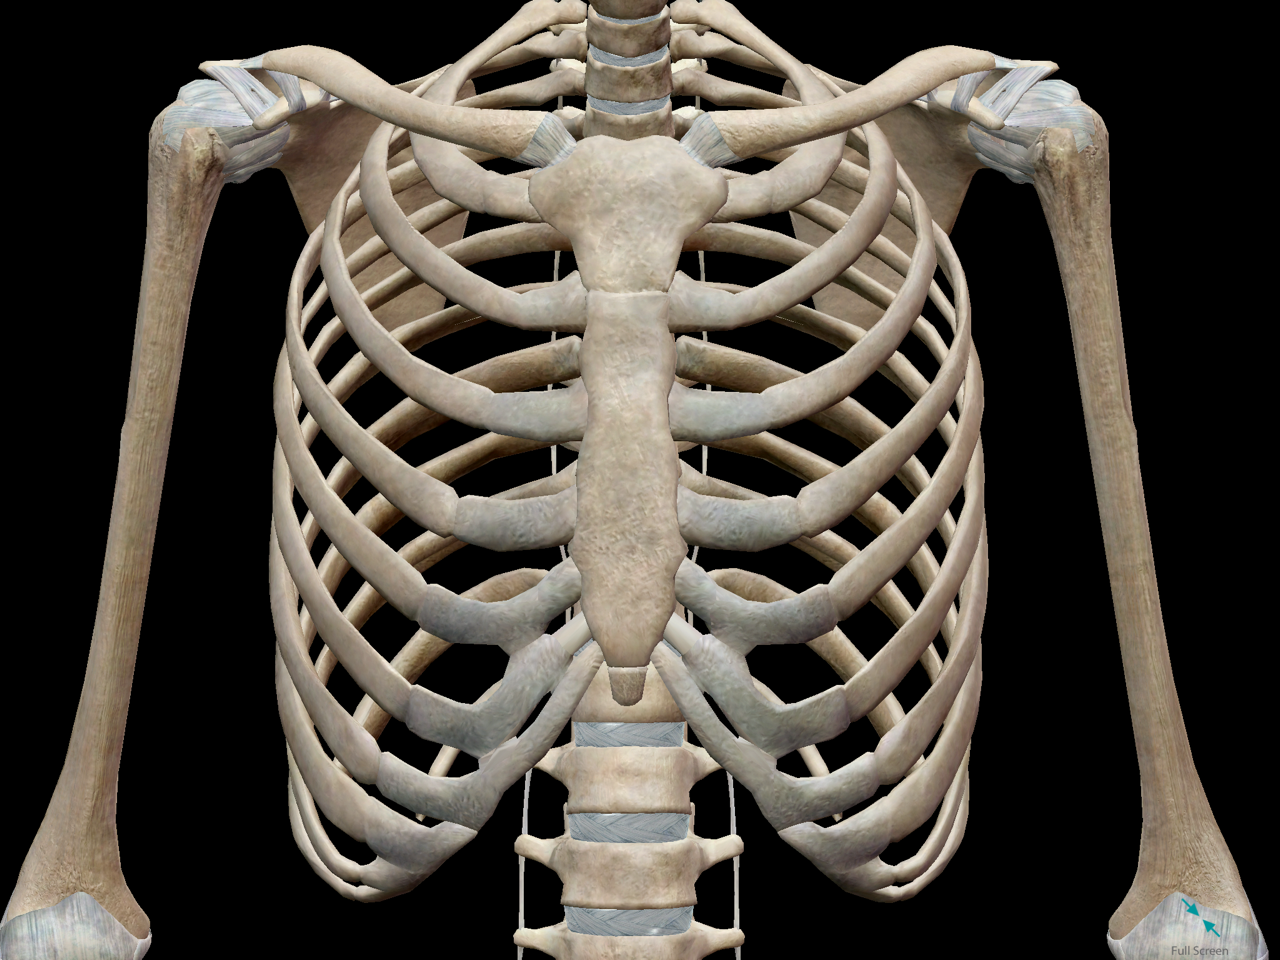 3D Skeletal System: 7 Interesting Facts about the Thoracic Cage